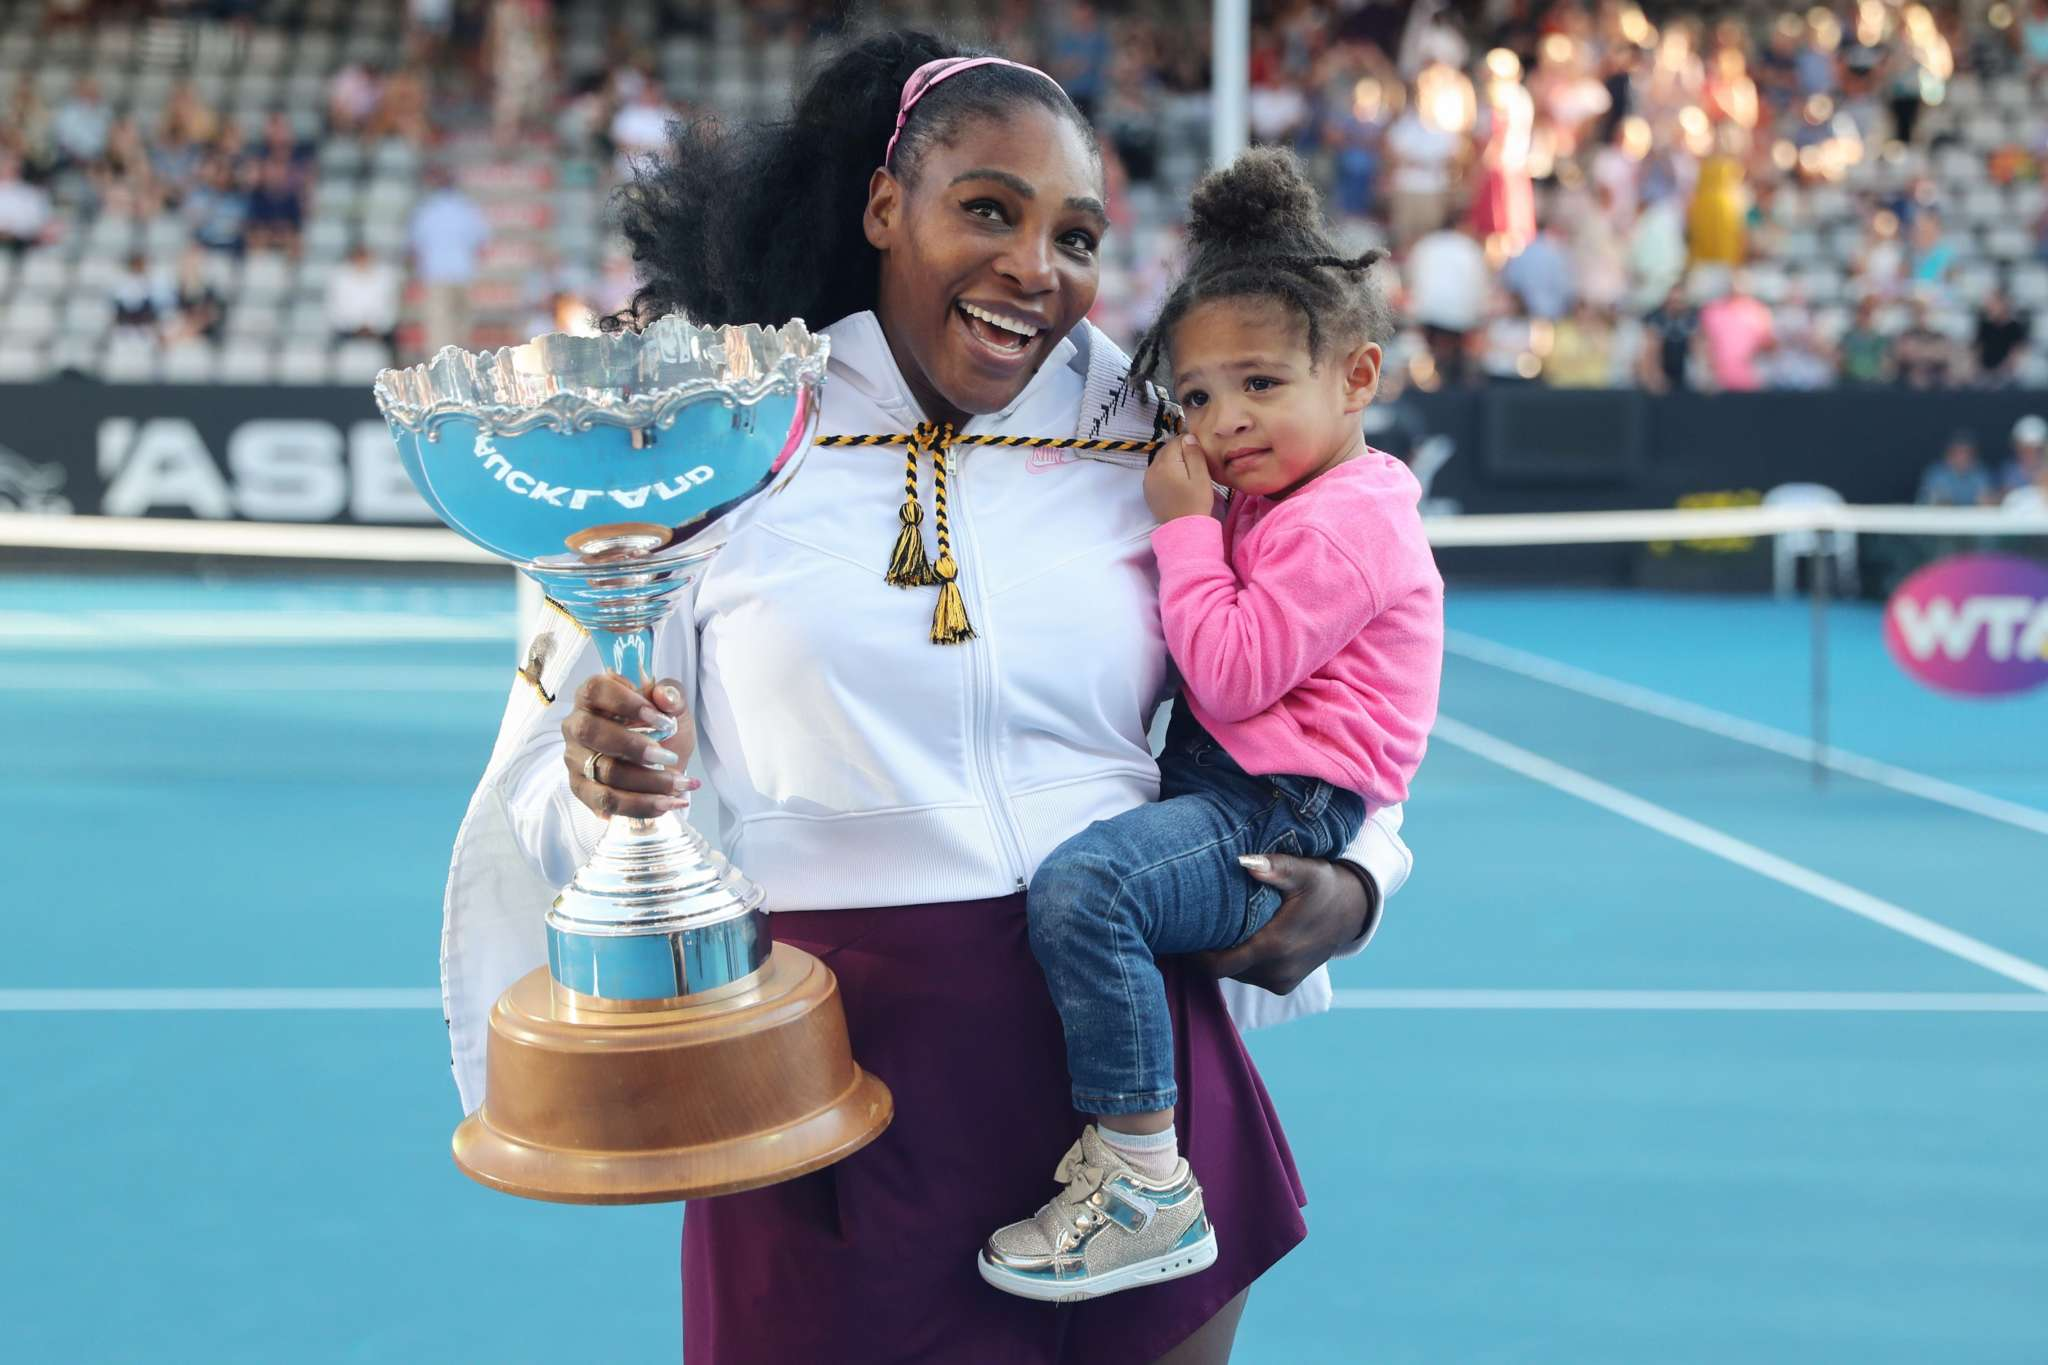 serena-williams-proves-she-and-2-year-old-daughter-olympia-wear-the-same-size-by-trying-on-the-toddlers-top-in-this-funny-video